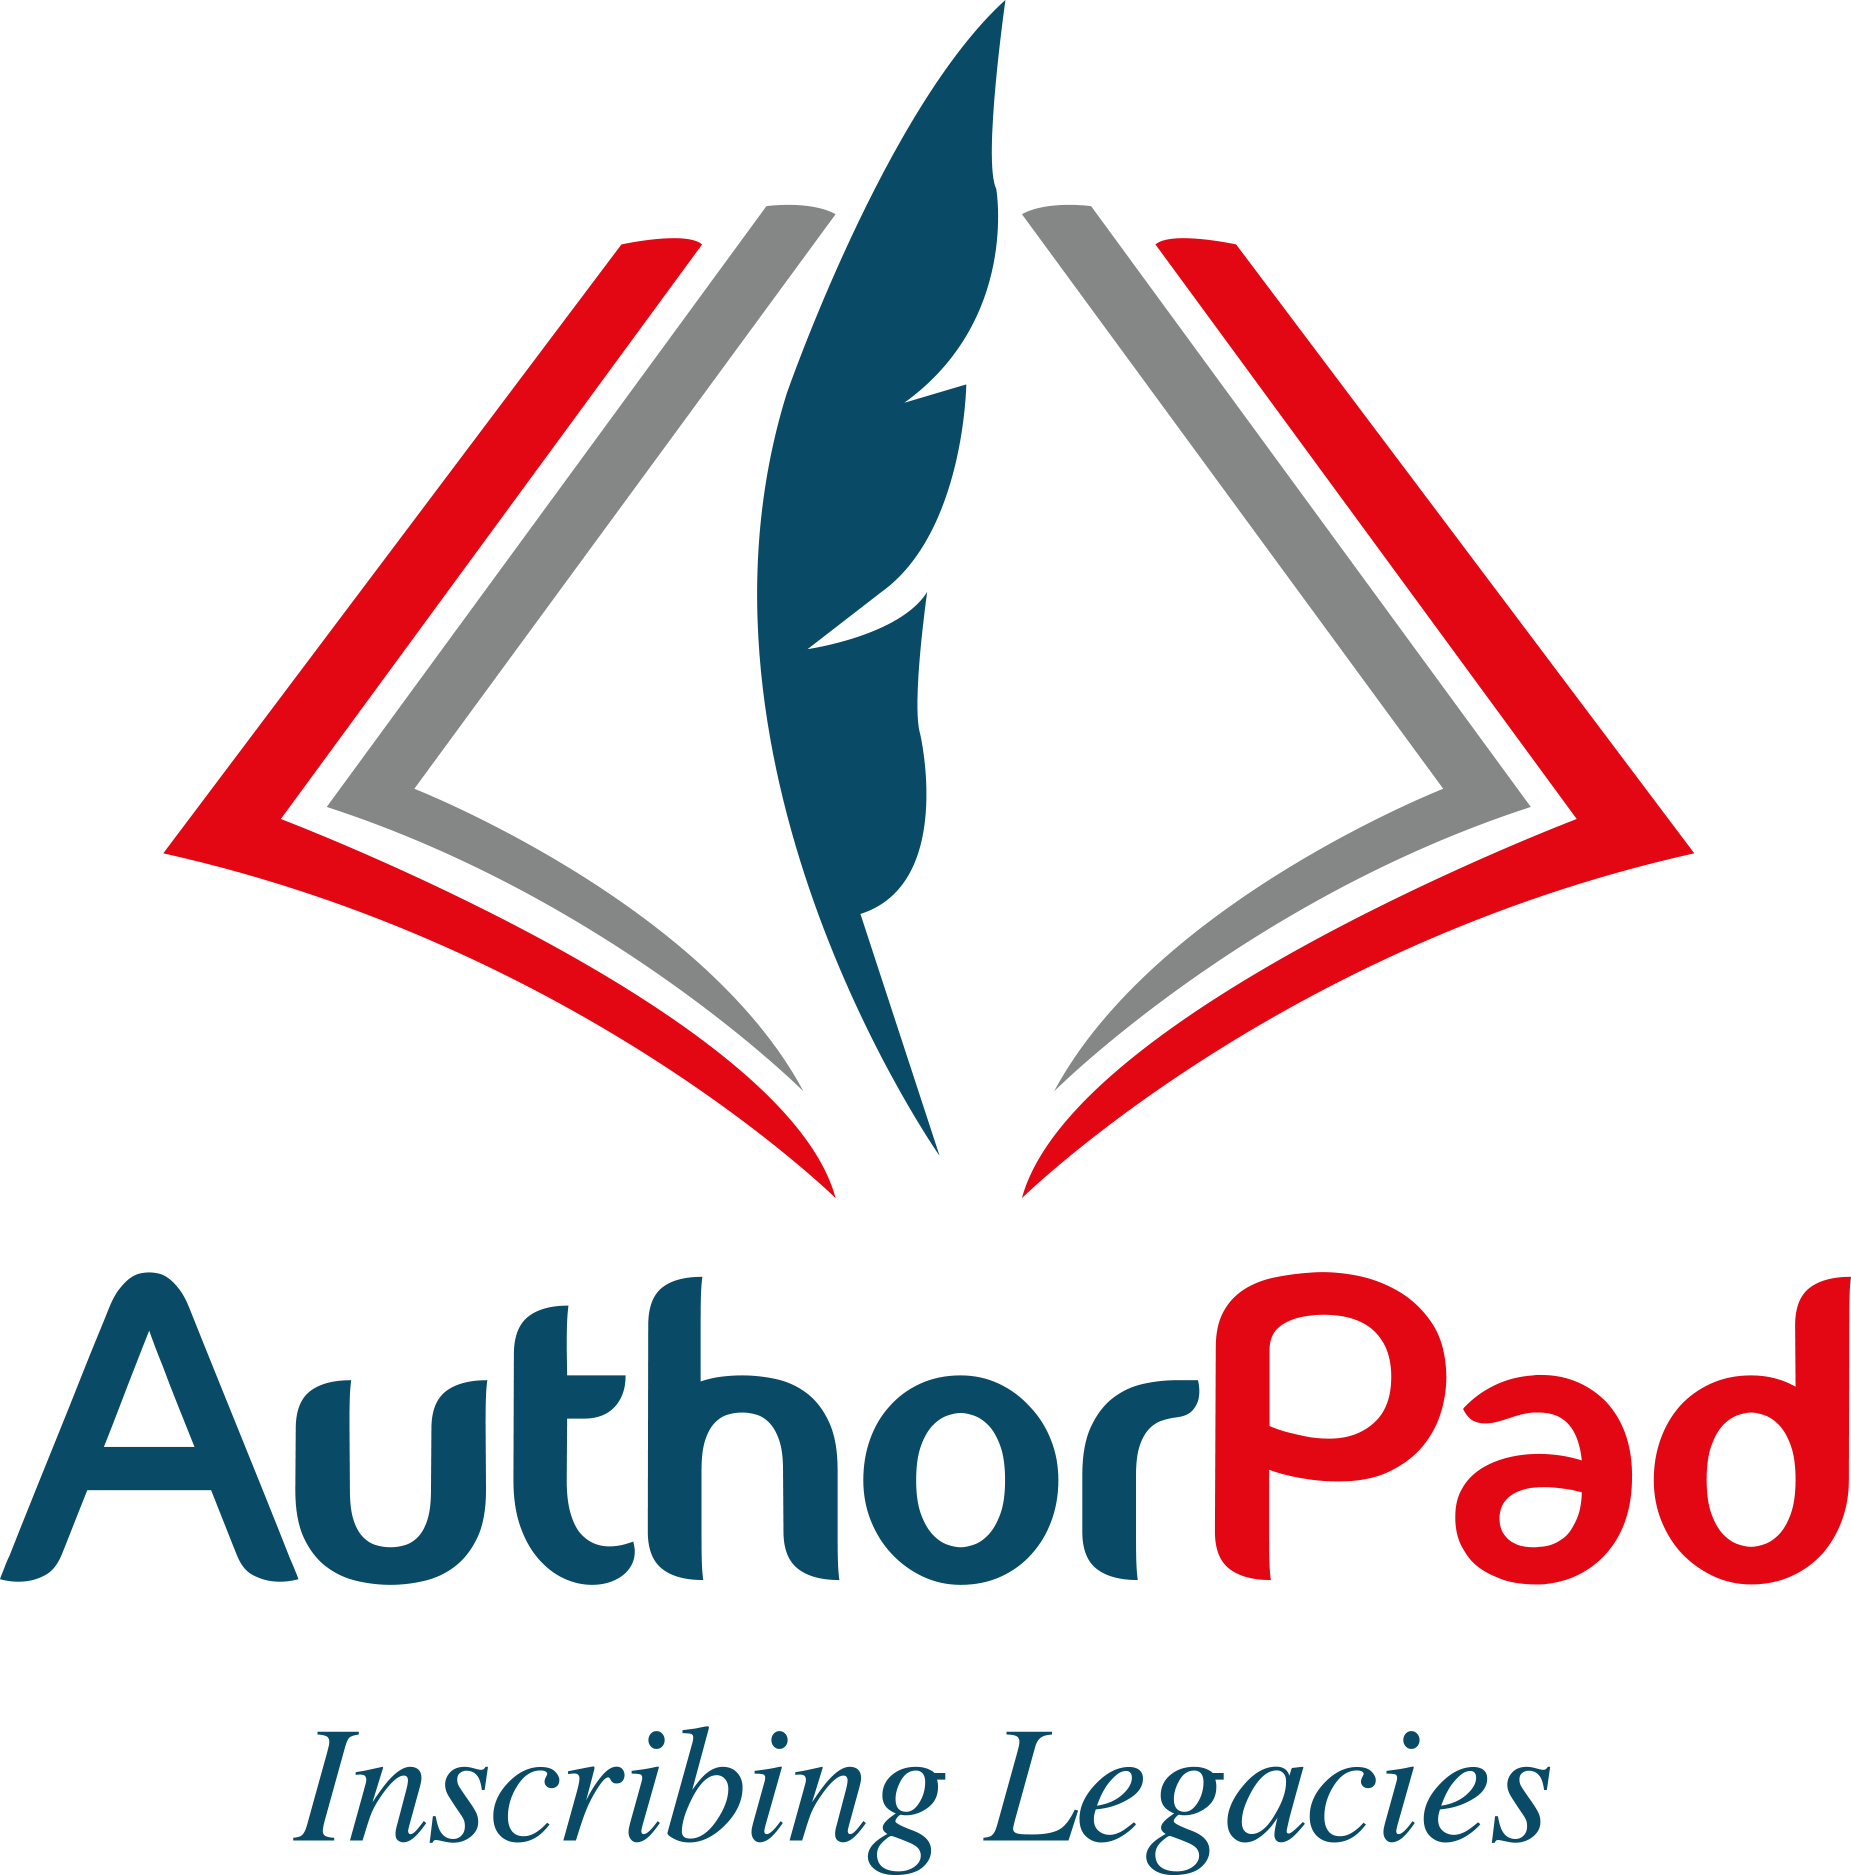 AuthorPad logo